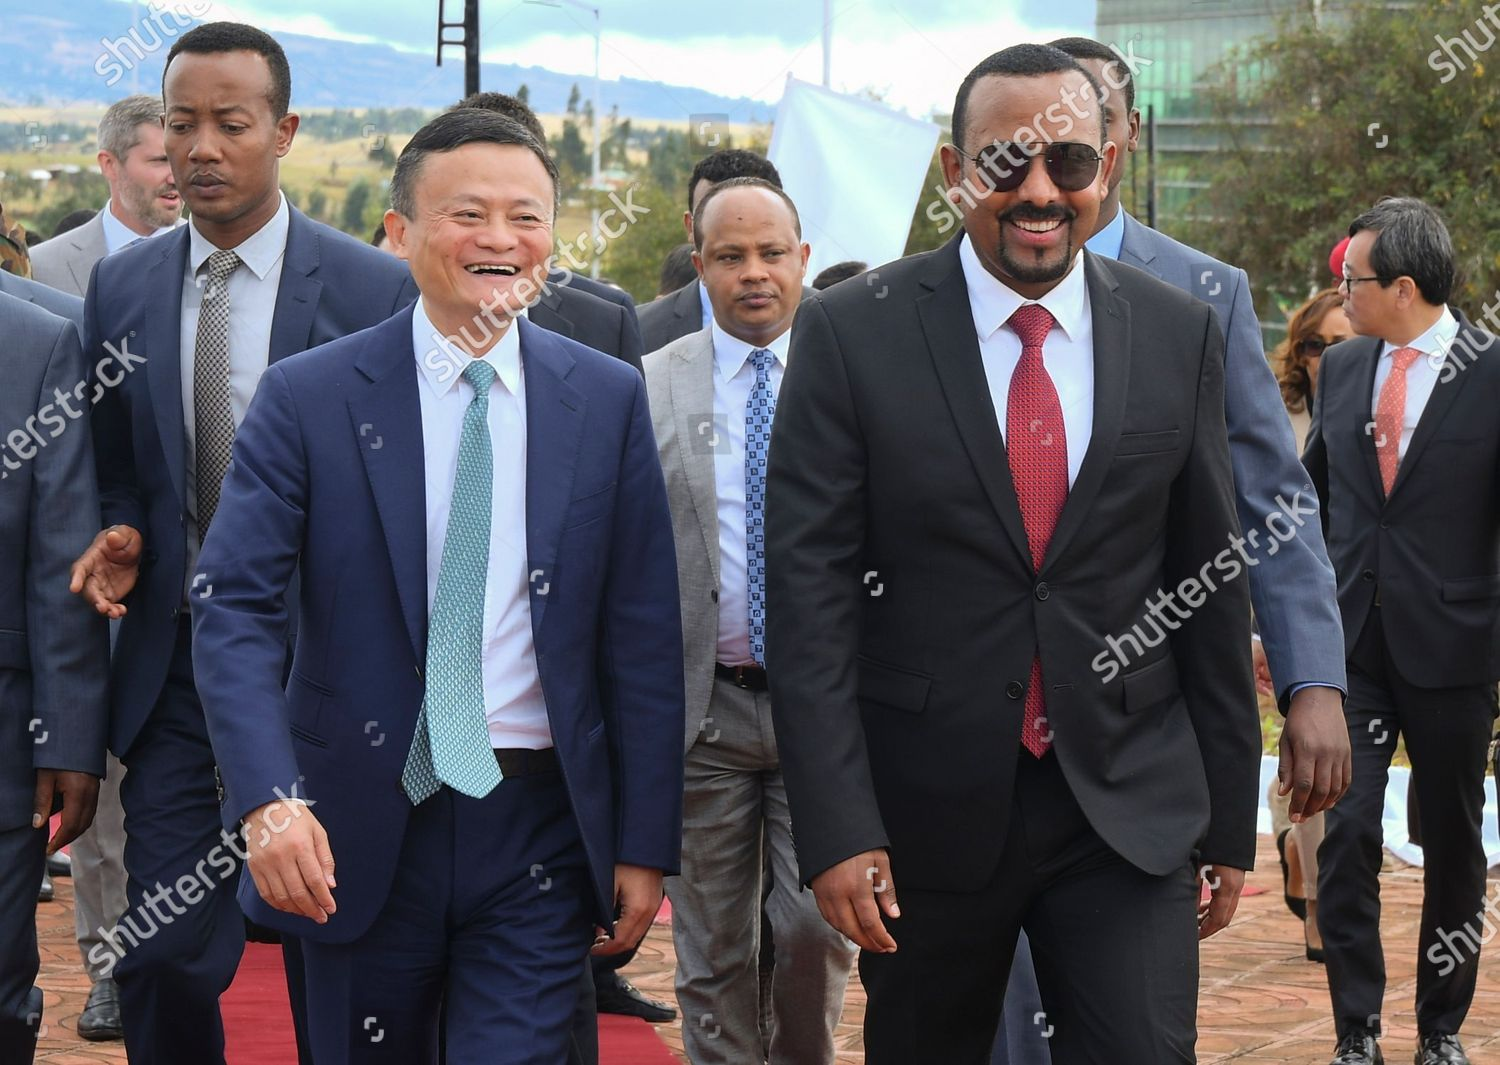 Jack Ma L Cofounder Chinas Alibaba Group Editorial Stock Photo Stock Image Shutterstock Alibaba.com brings you reliable and proficient ethiopia cargo shipping companies for faster shipping. https www shutterstock com editorial image editorial alibabas jack ma visits ethiopia addis ababa 25 nov 2019 10484584m